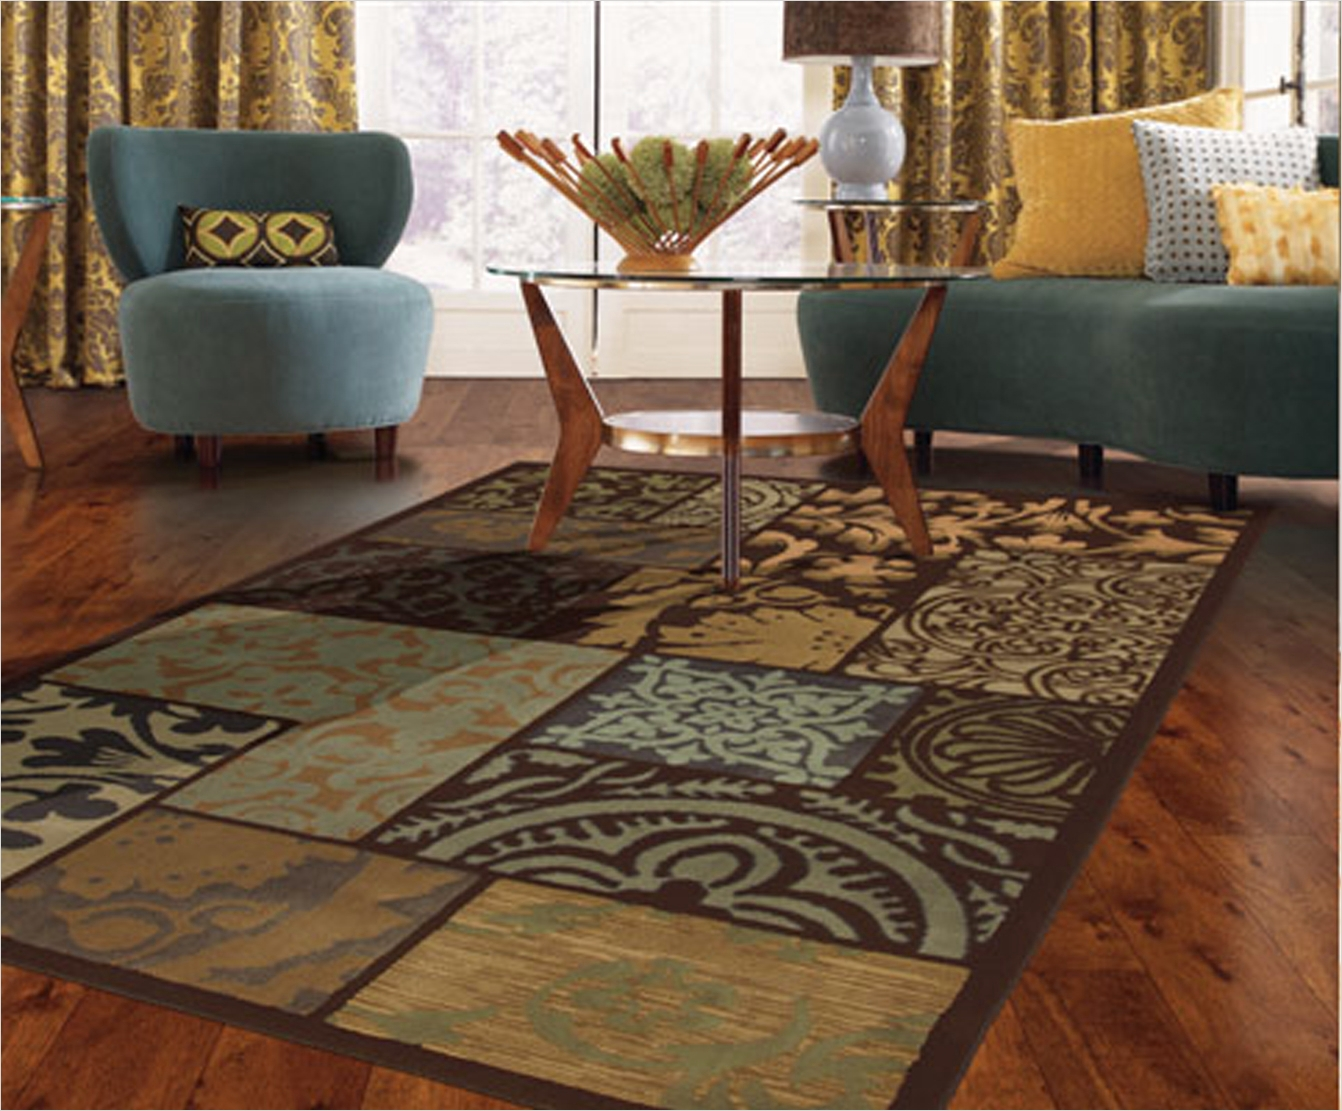 43 Beautiful Living Room area Rugs 46 Living Room Beautiful Living Room Rugs Living Room Rug Color Ideas Living Room Rug Size 1